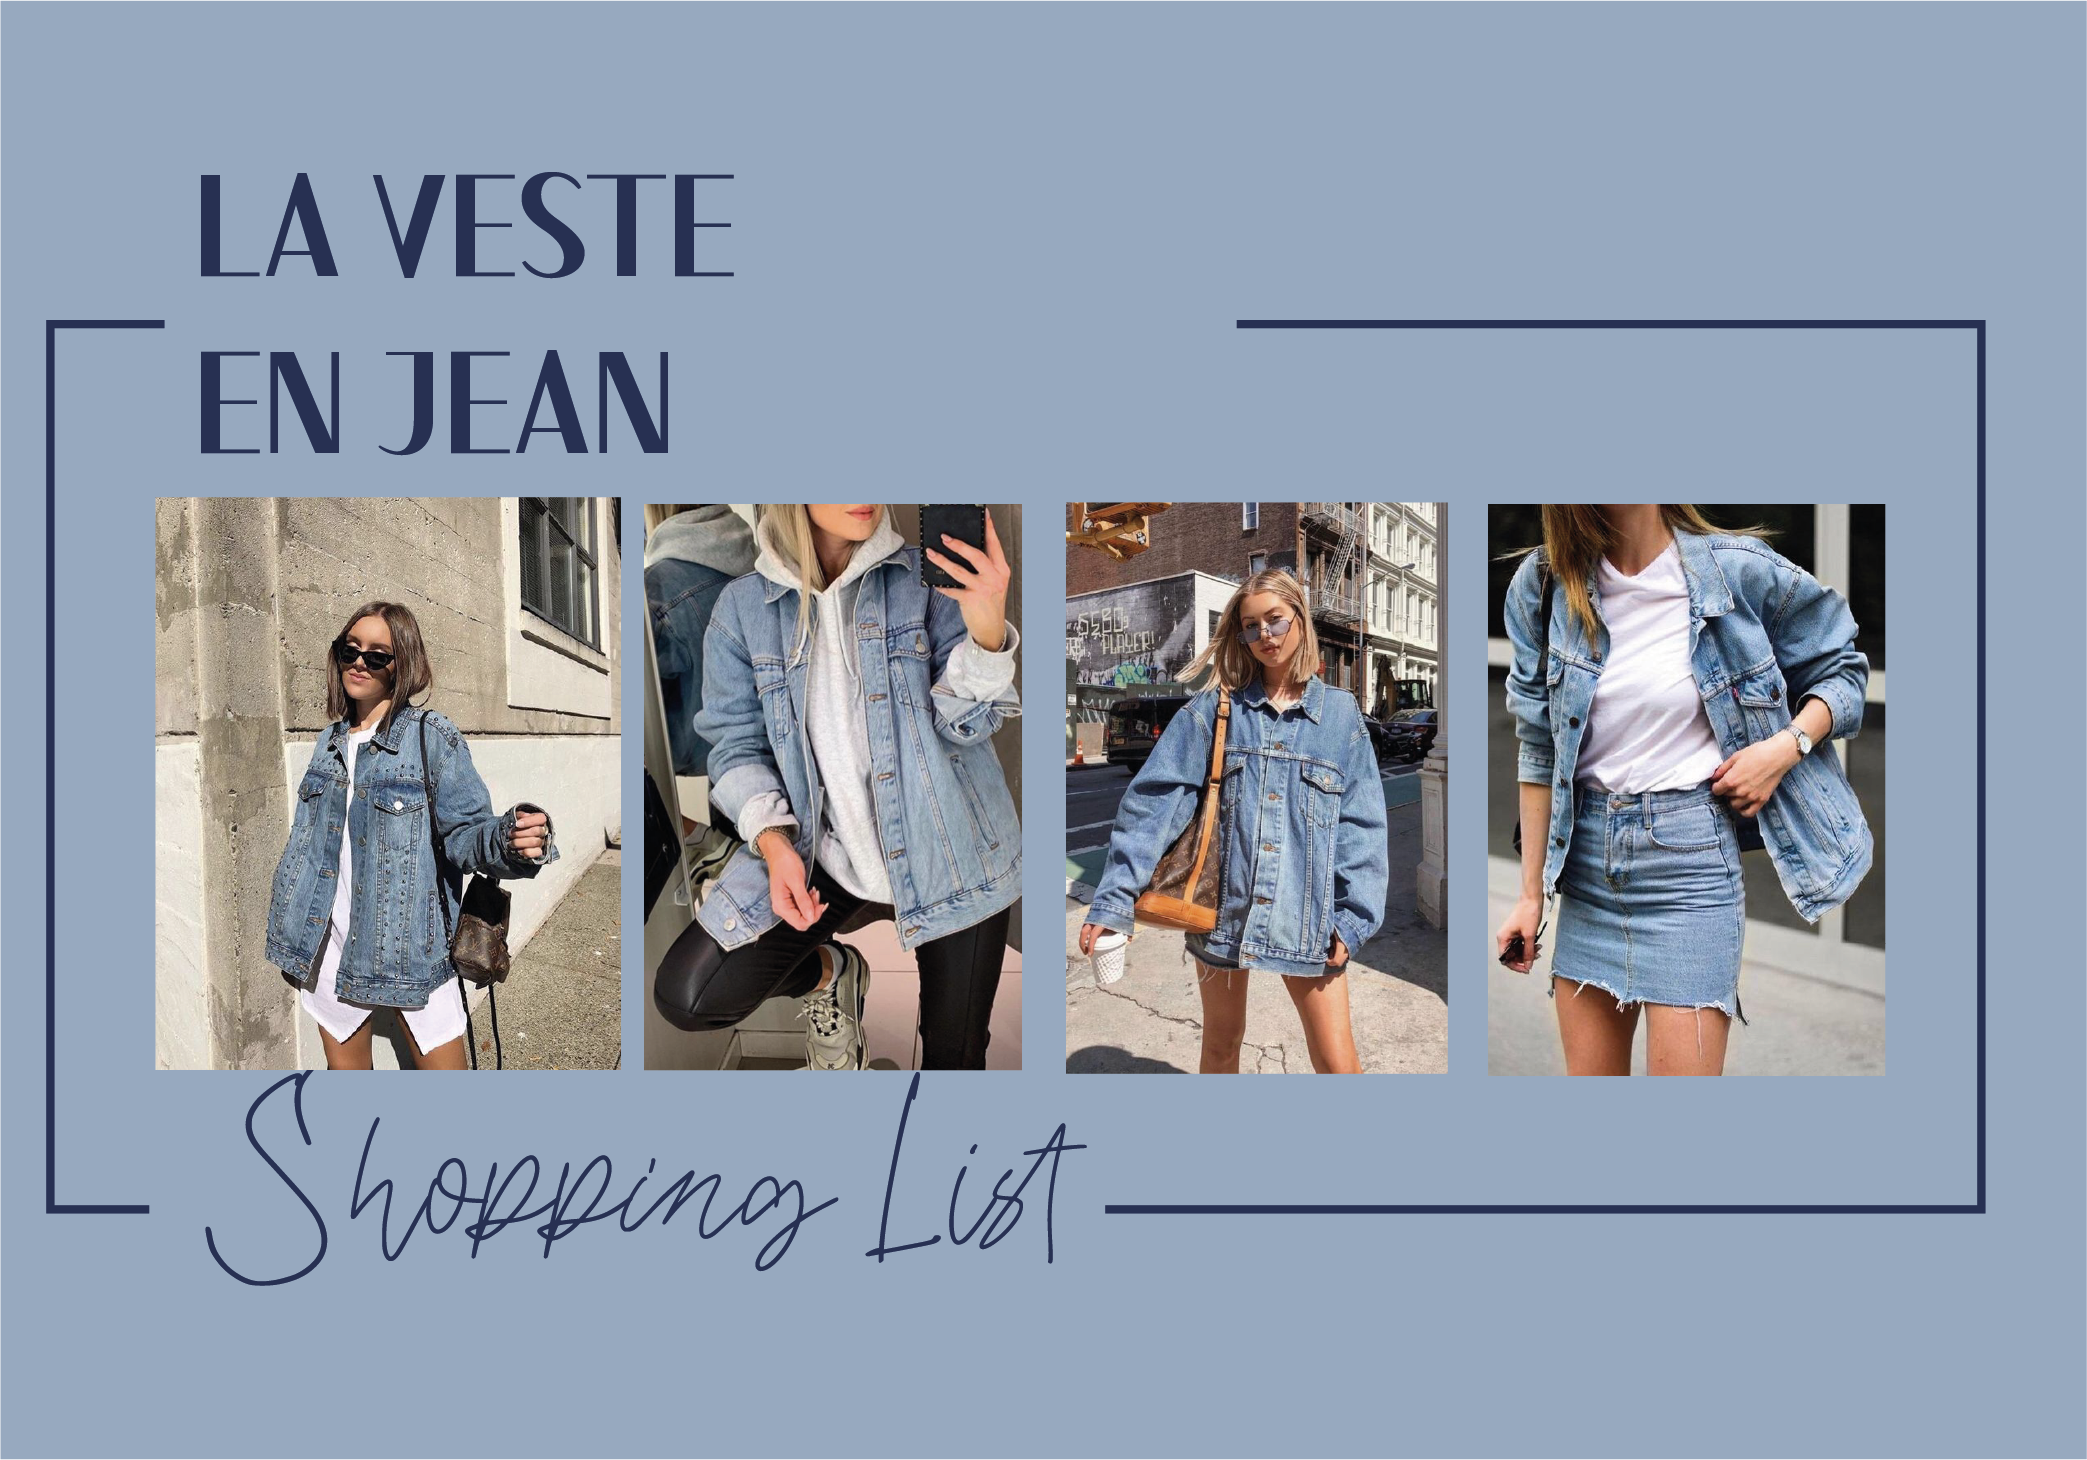 #Shopping List vestes en jean